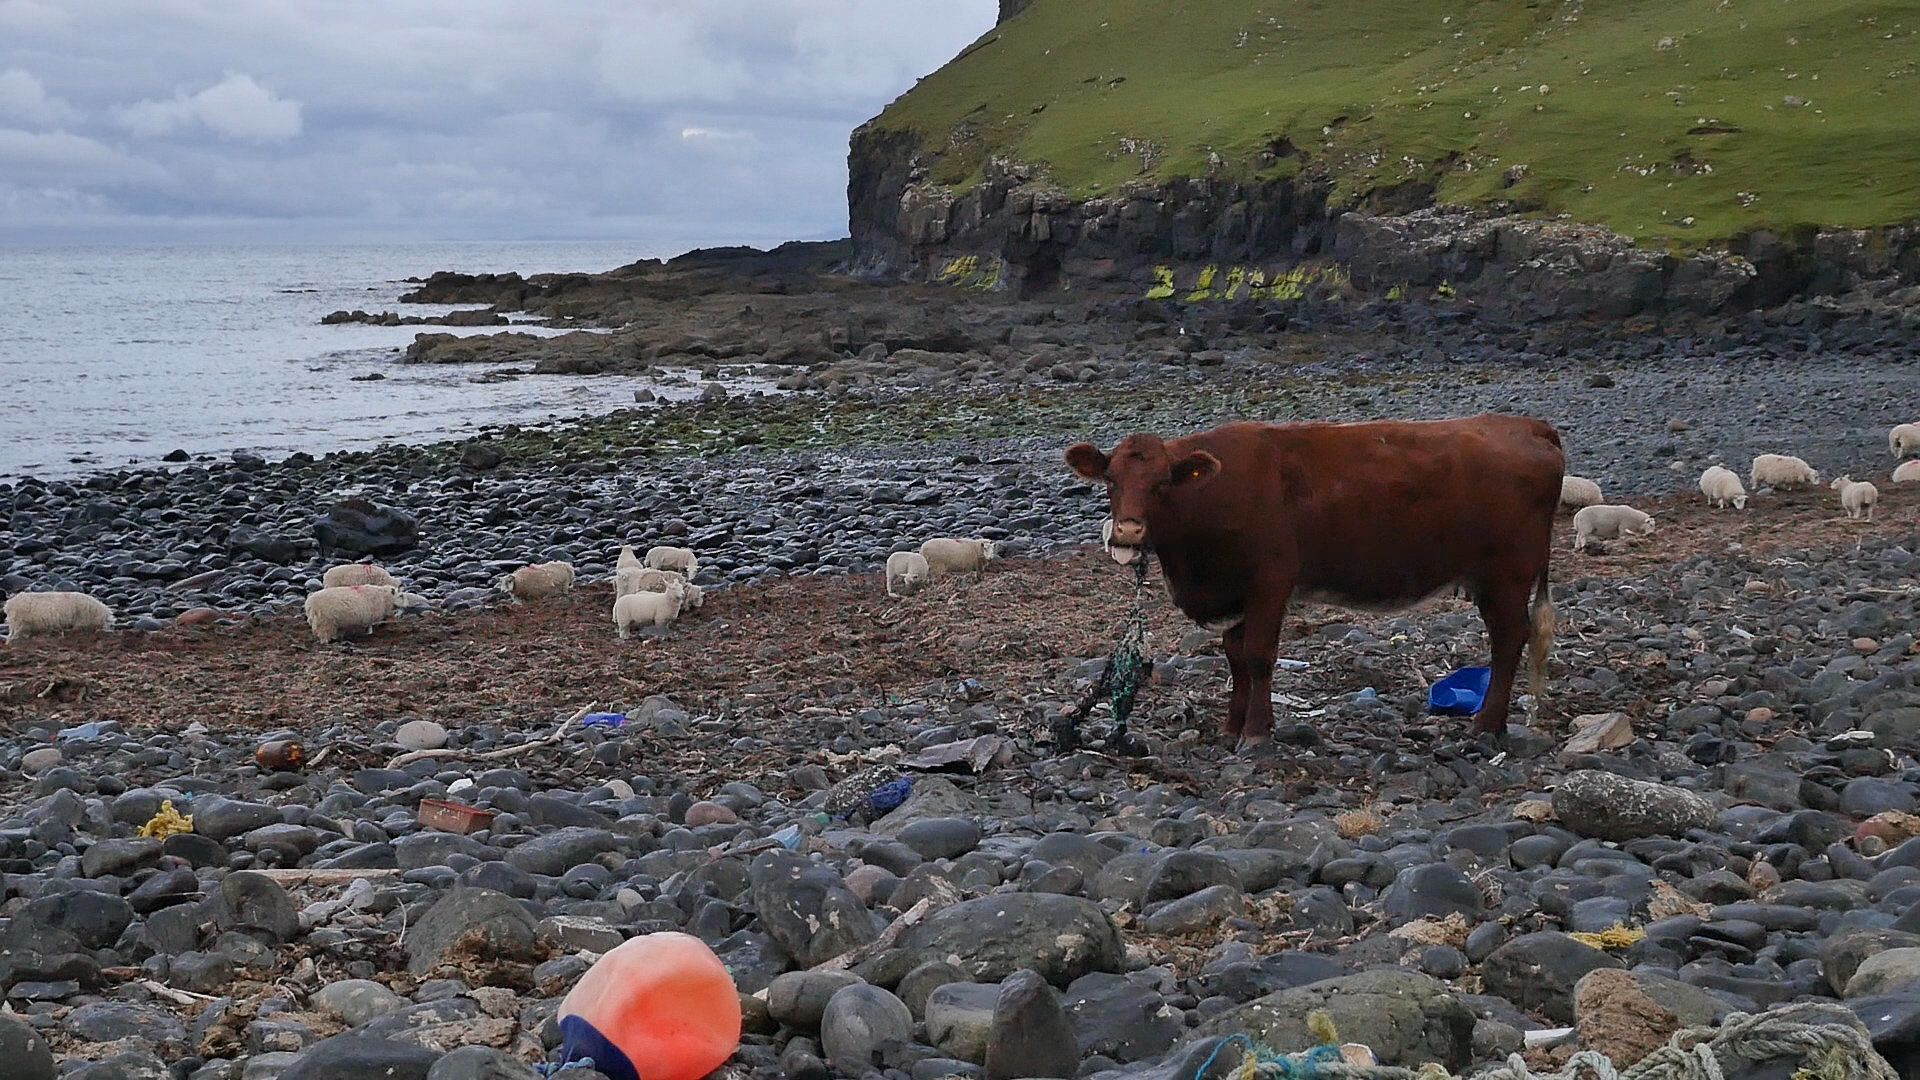 Cow chewing on plastic fishing net